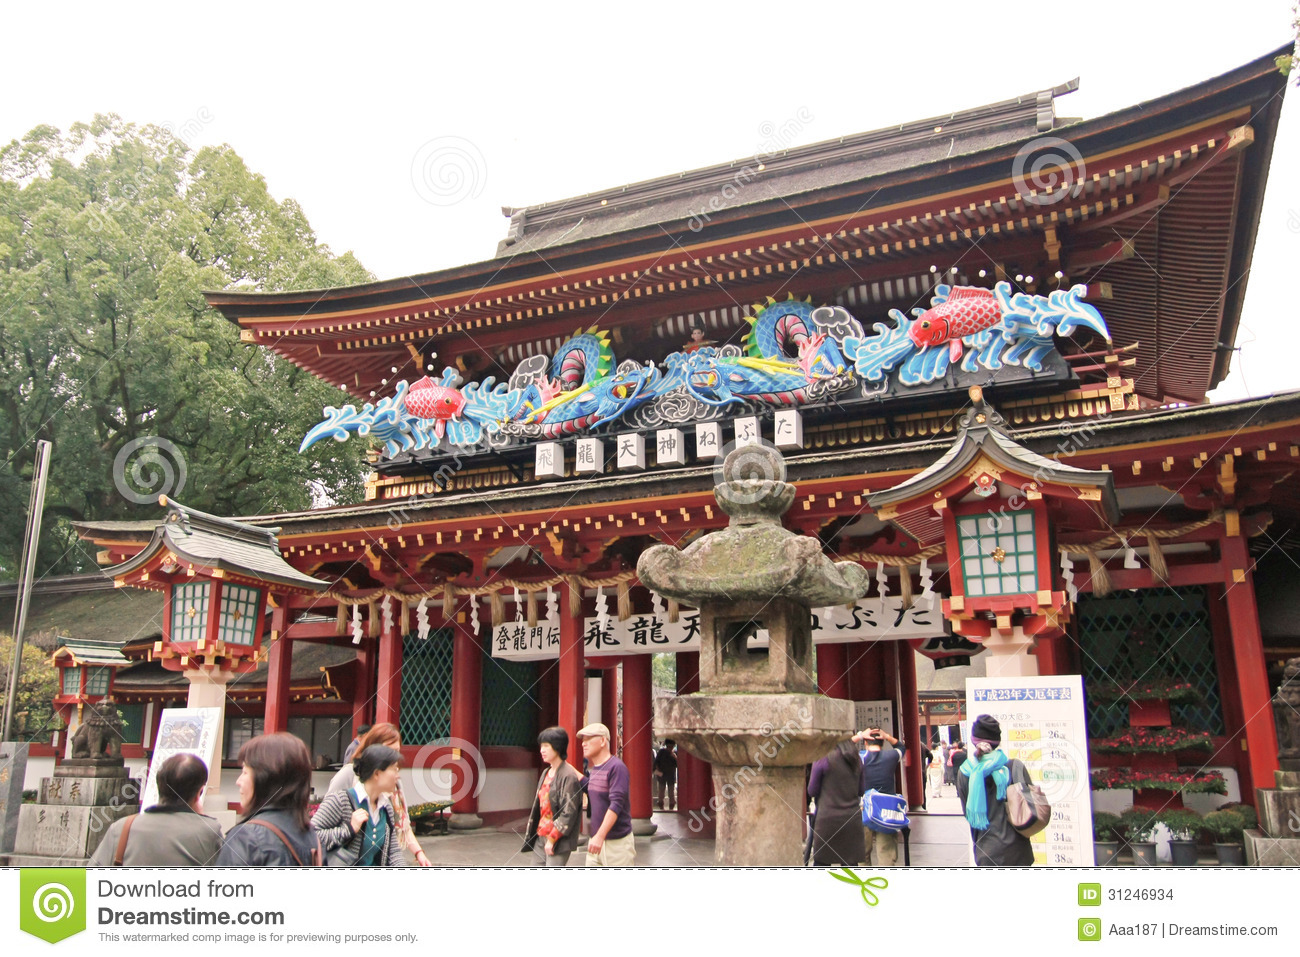 People Make Merit And Bless For The Goodness In Dazaifu Tenmangu.